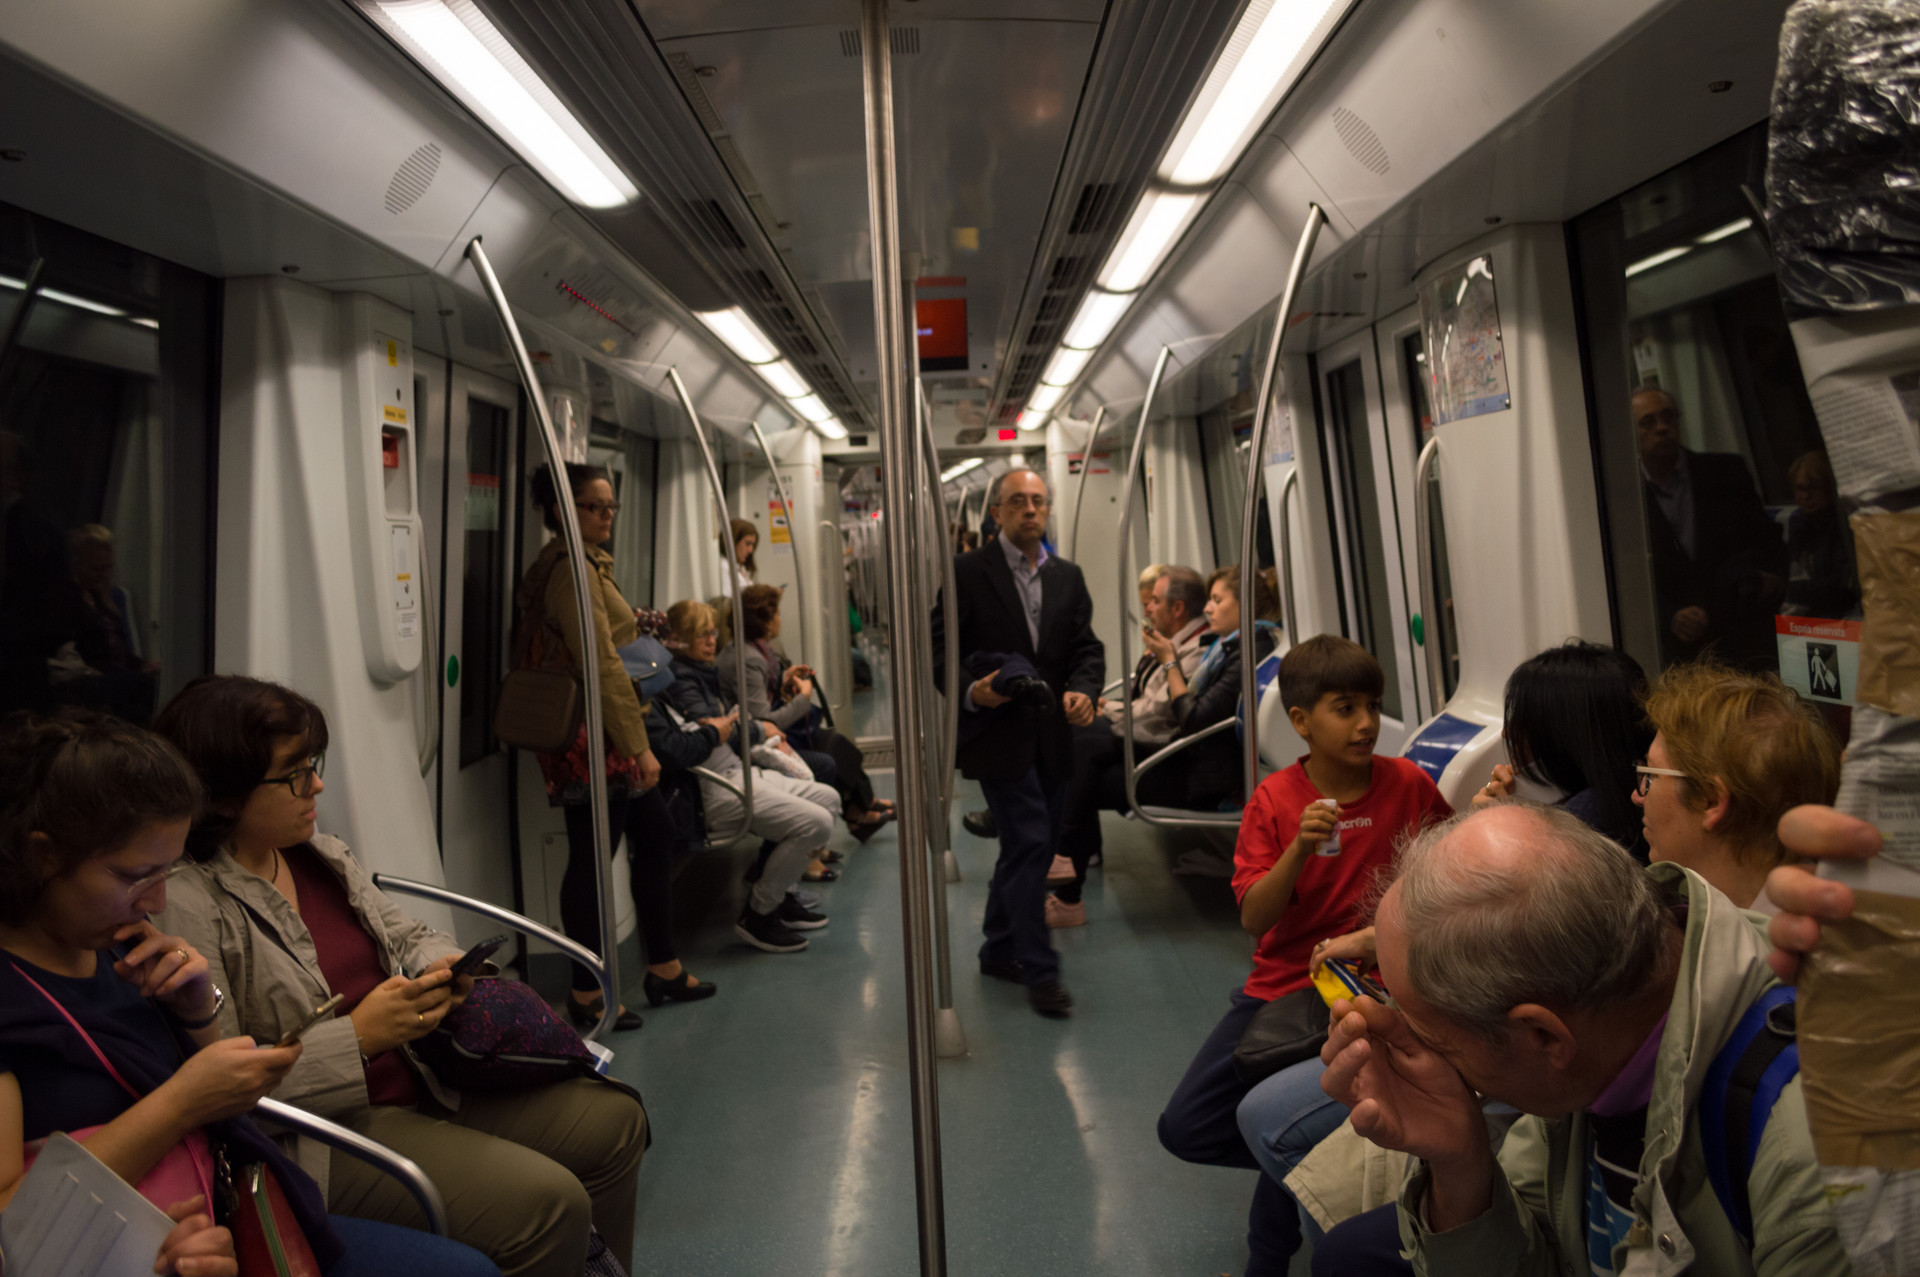 subway, Barcelona / Spain · October 30, 2017